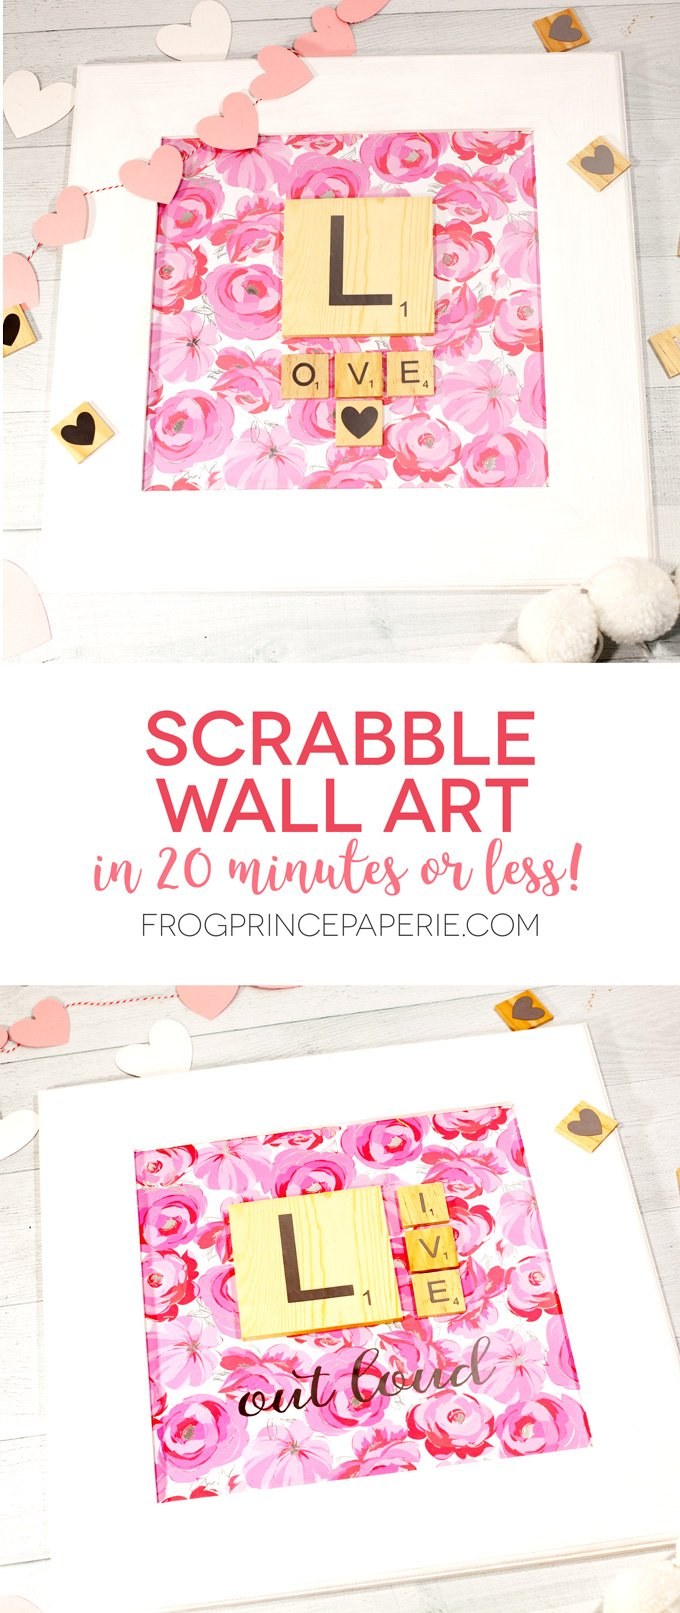 Make Scrabble wall art in less than 15 minutes! This Scrabble craft project is the perfect way to celebrate National Scrabble Day.